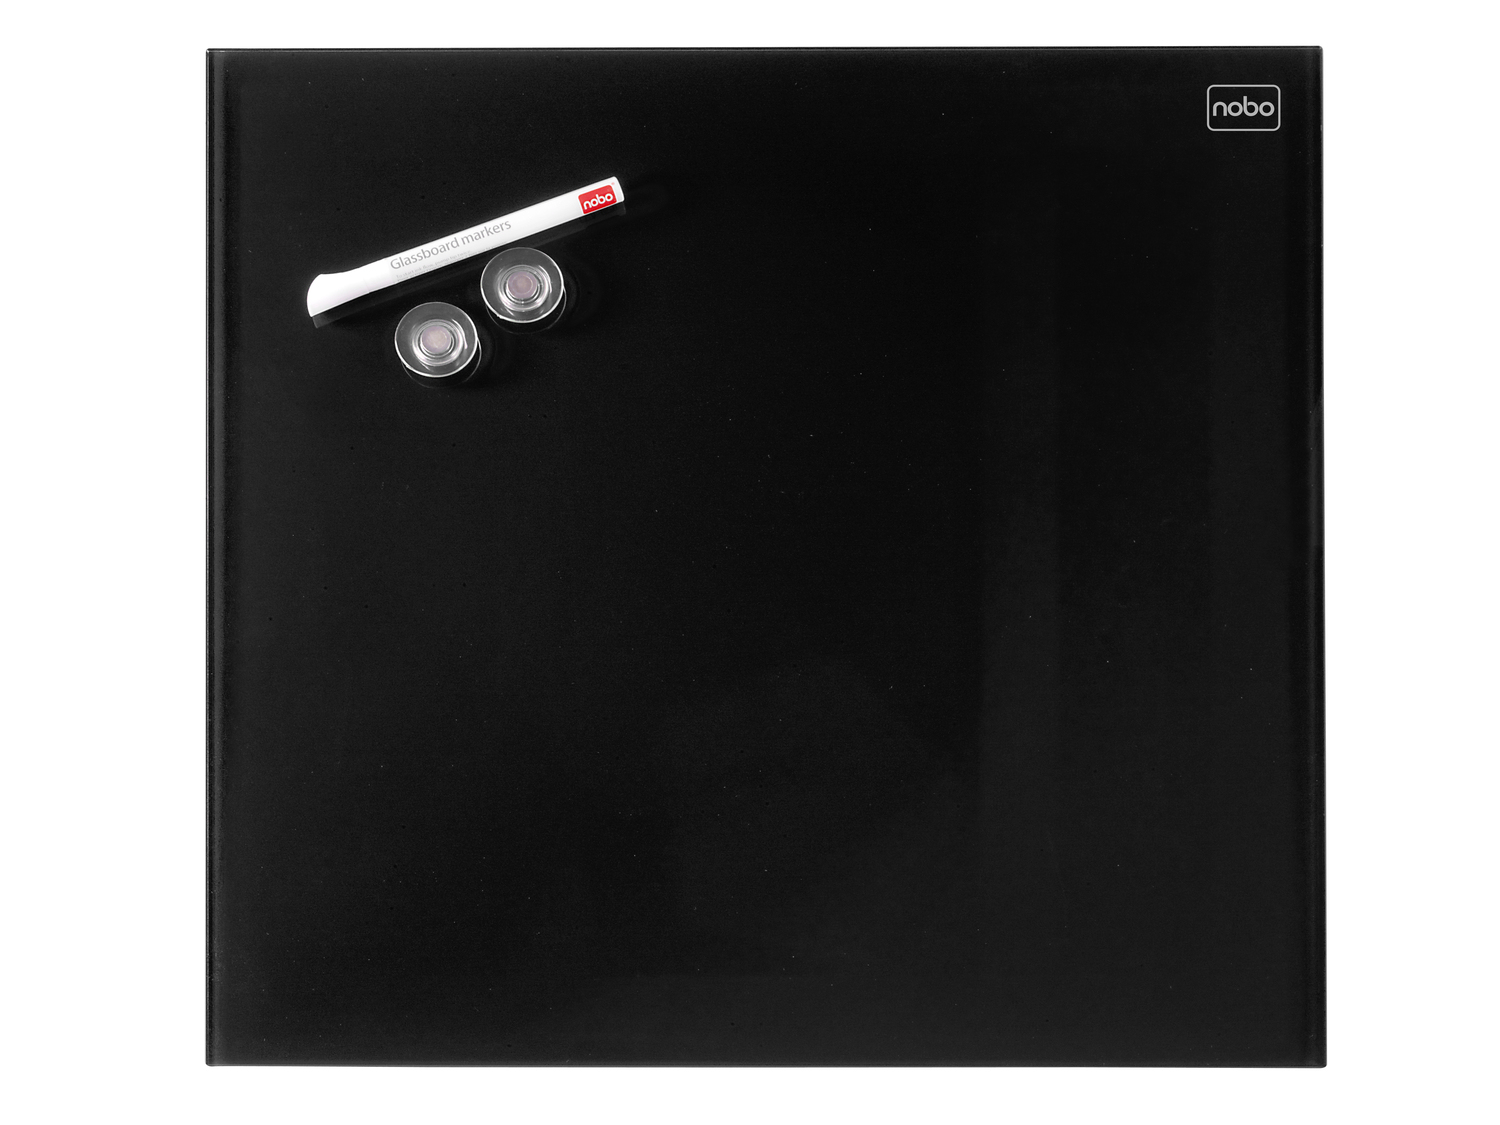 acco Nobo Diamond Drywipe Board Magnetic 450x450mm Black Dd 1903951 - AD01